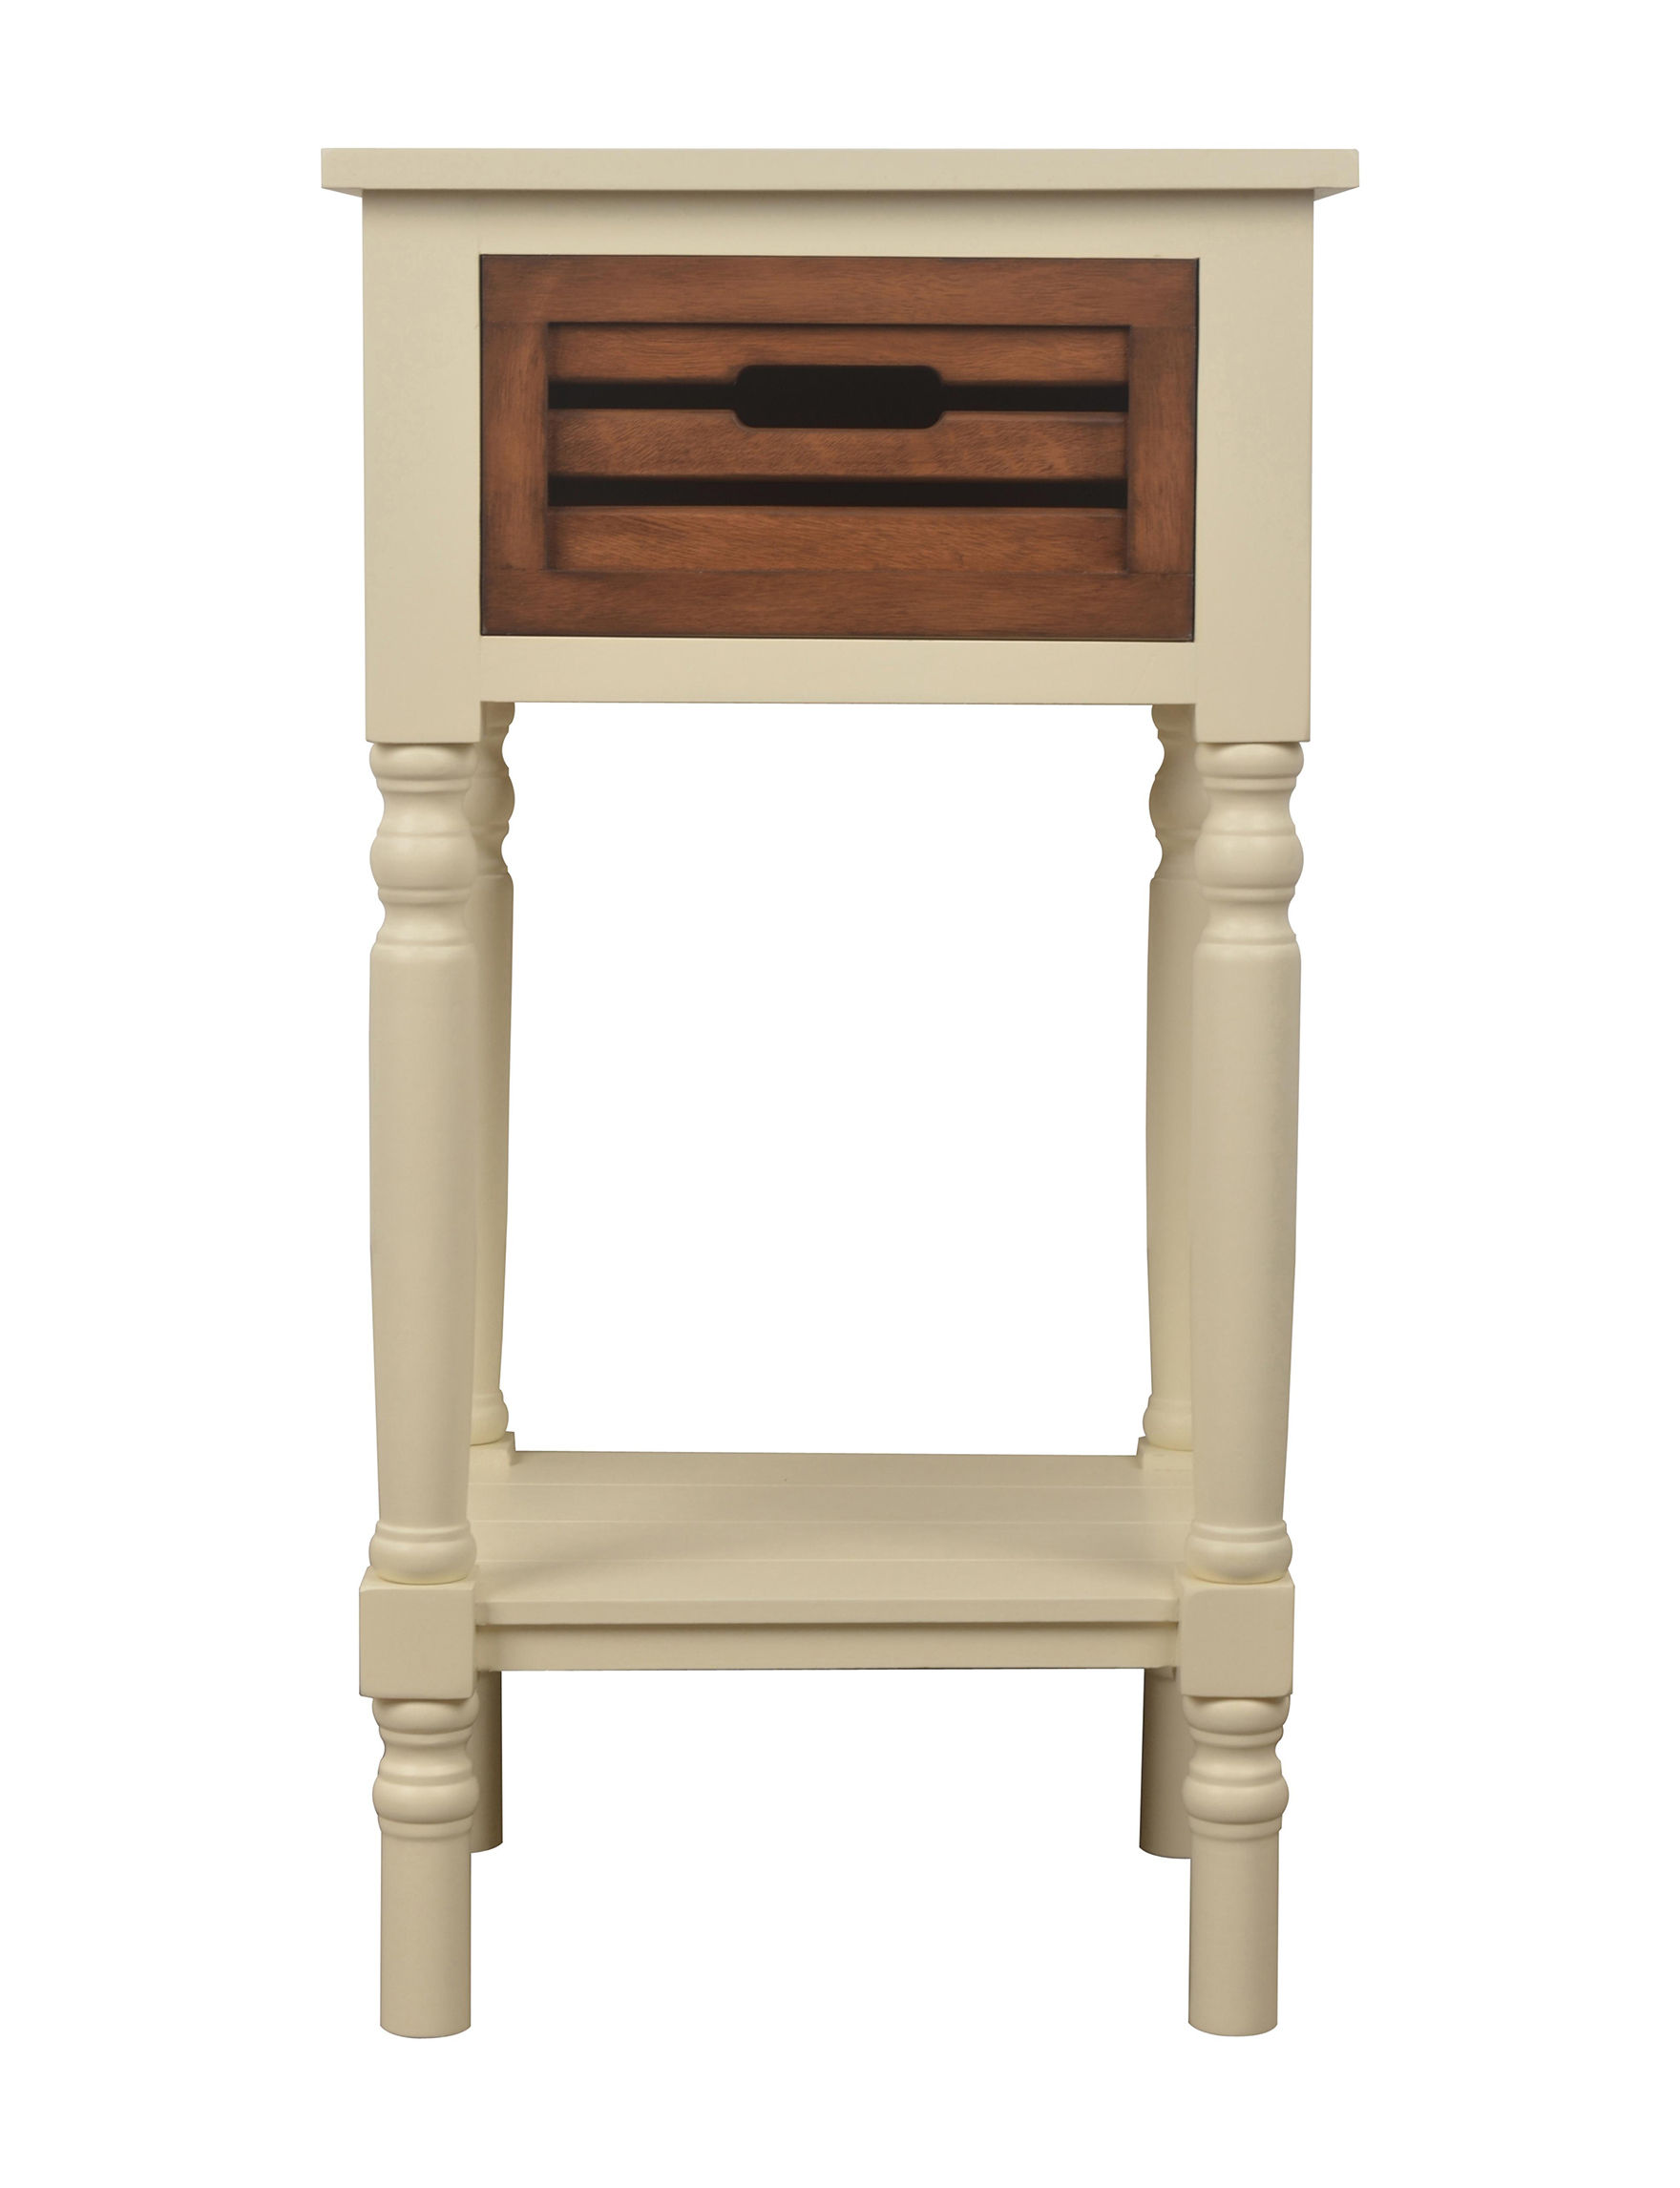 Decor Therapy White / Brown Accent & End Tables Night Stands Bedroom Furniture Entryway Furniture Home Office Furniture Living Room Furniture